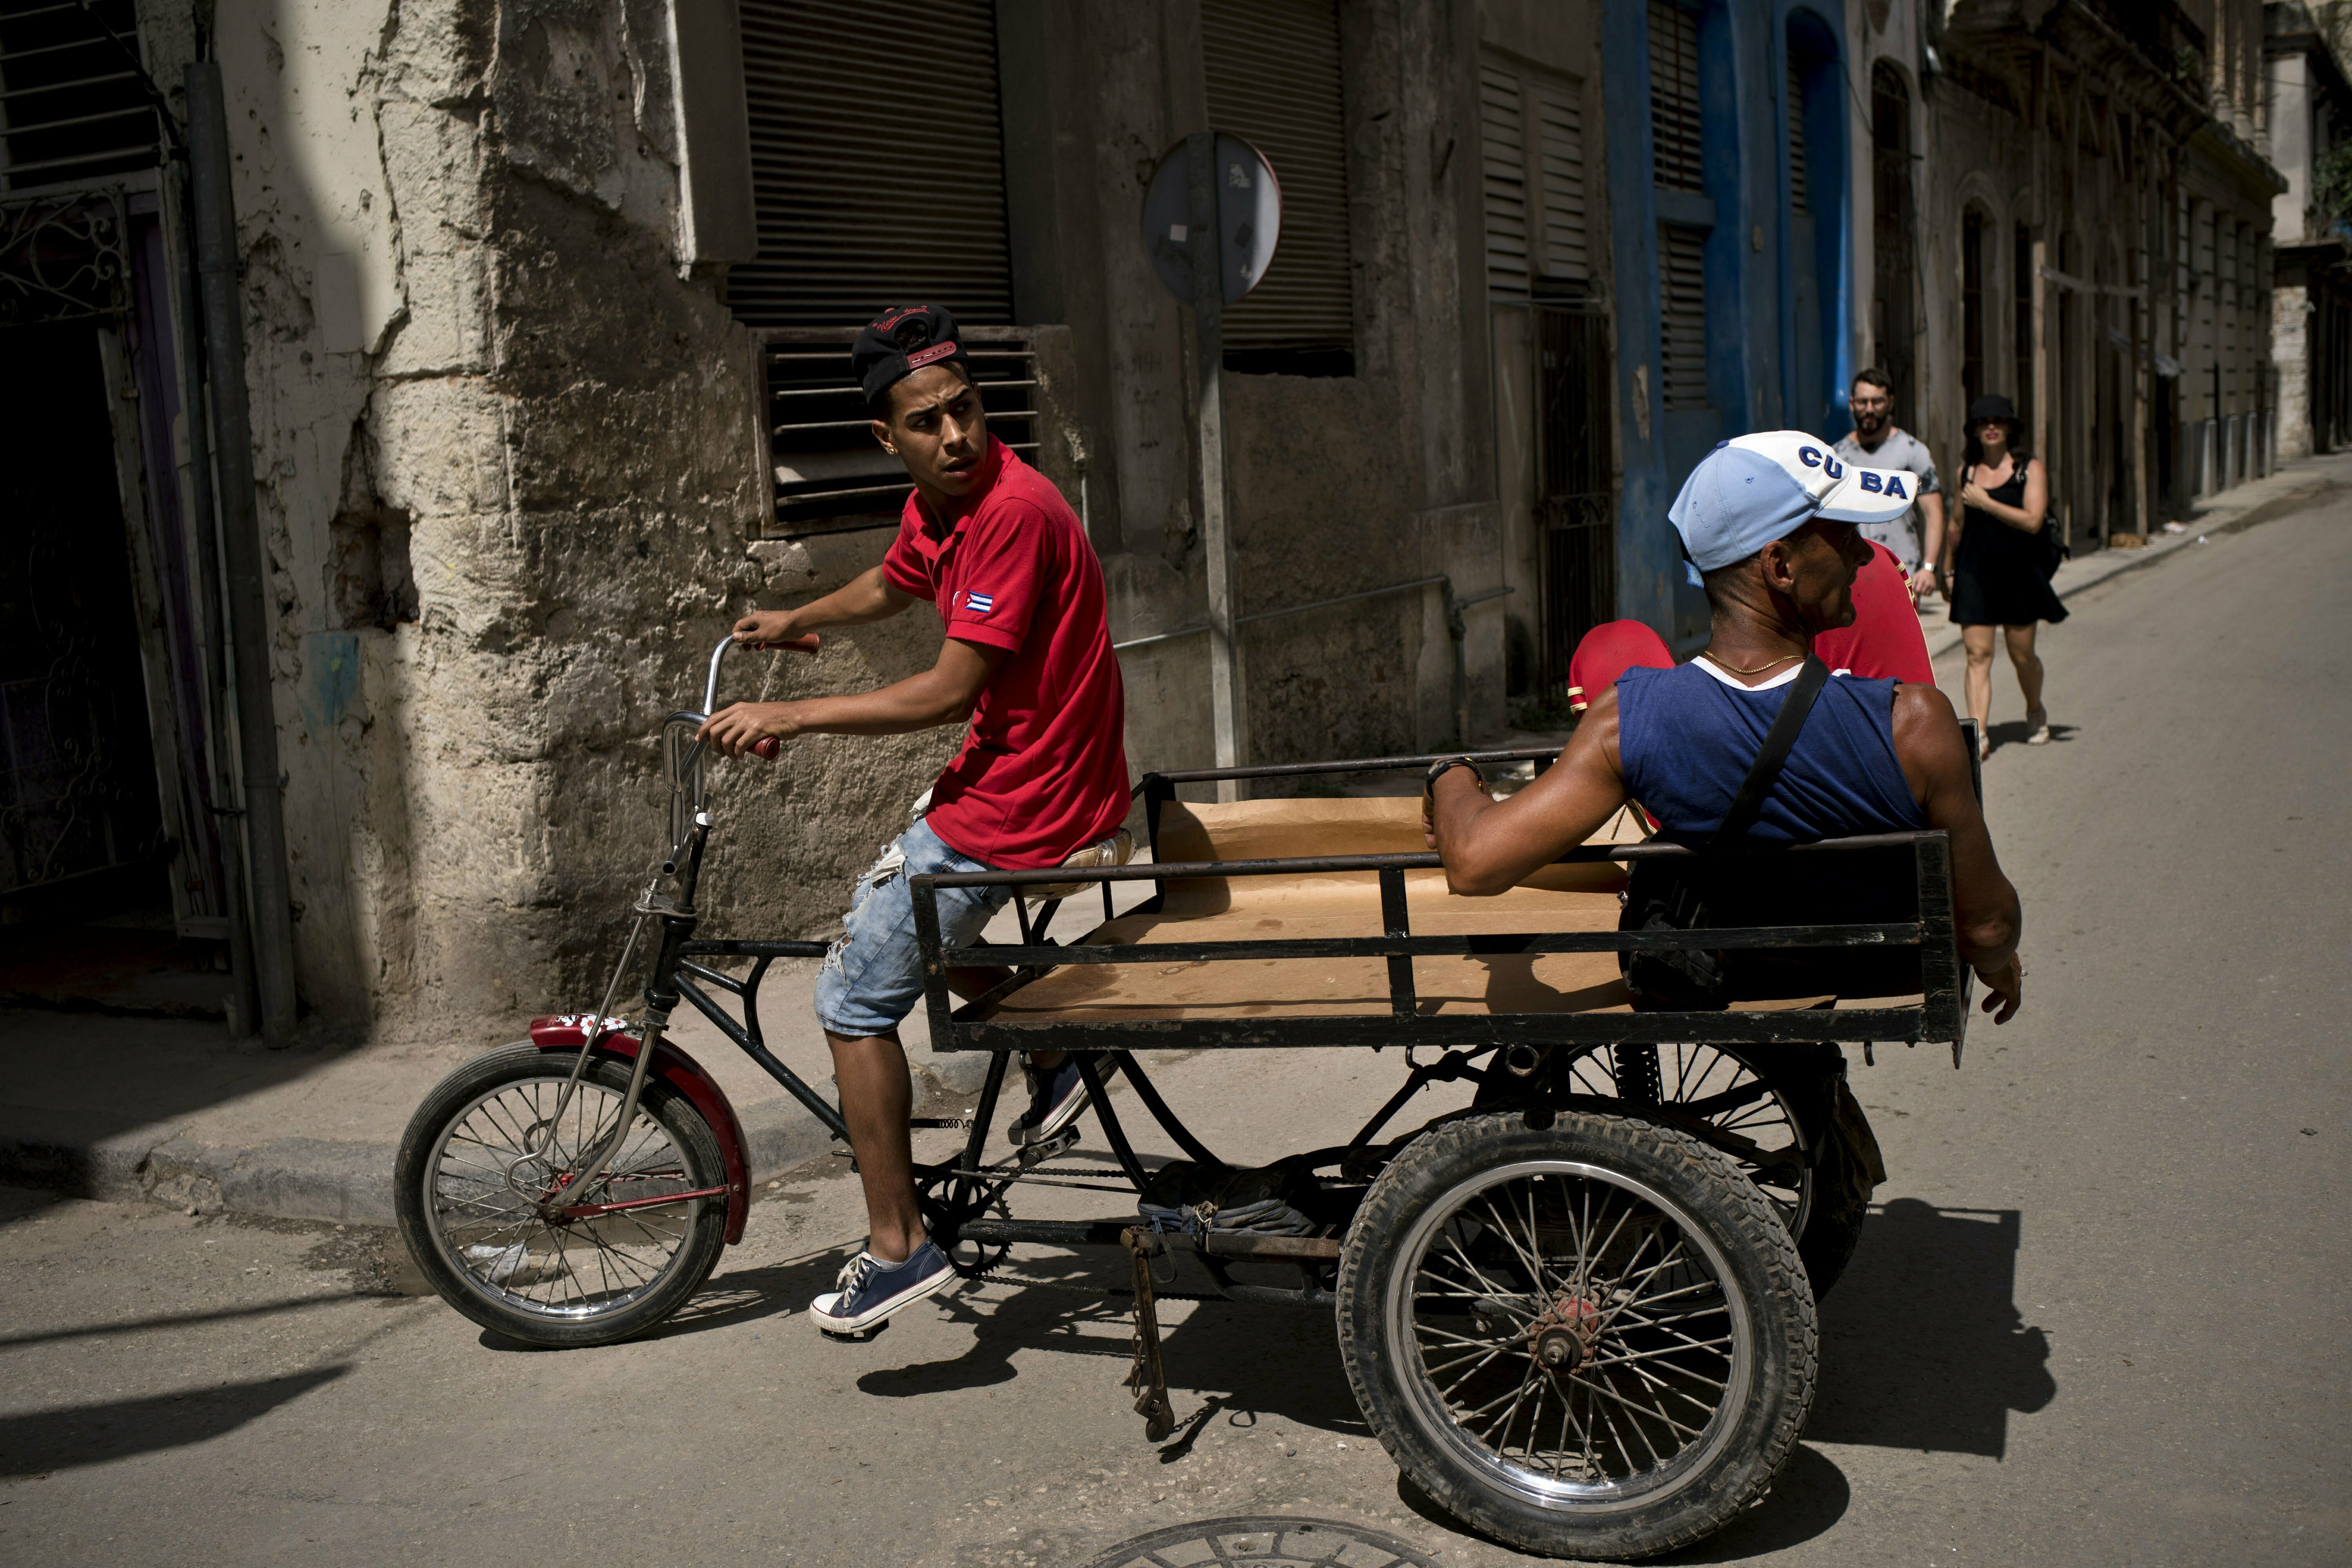 A man pedaling a tricycle equipped with a platform earns a living by transporting passengers through Havana, Cuba, Wednesday, April 10, 2019. Communist Party leader Raúl Castro warned Cubans on Wednesday that they should brace for worsening shortages due to Trump administration policies, but said the island won't return to the extreme deprivation of the post-Soviet period. (AP Photo/Ramon Espinosa)